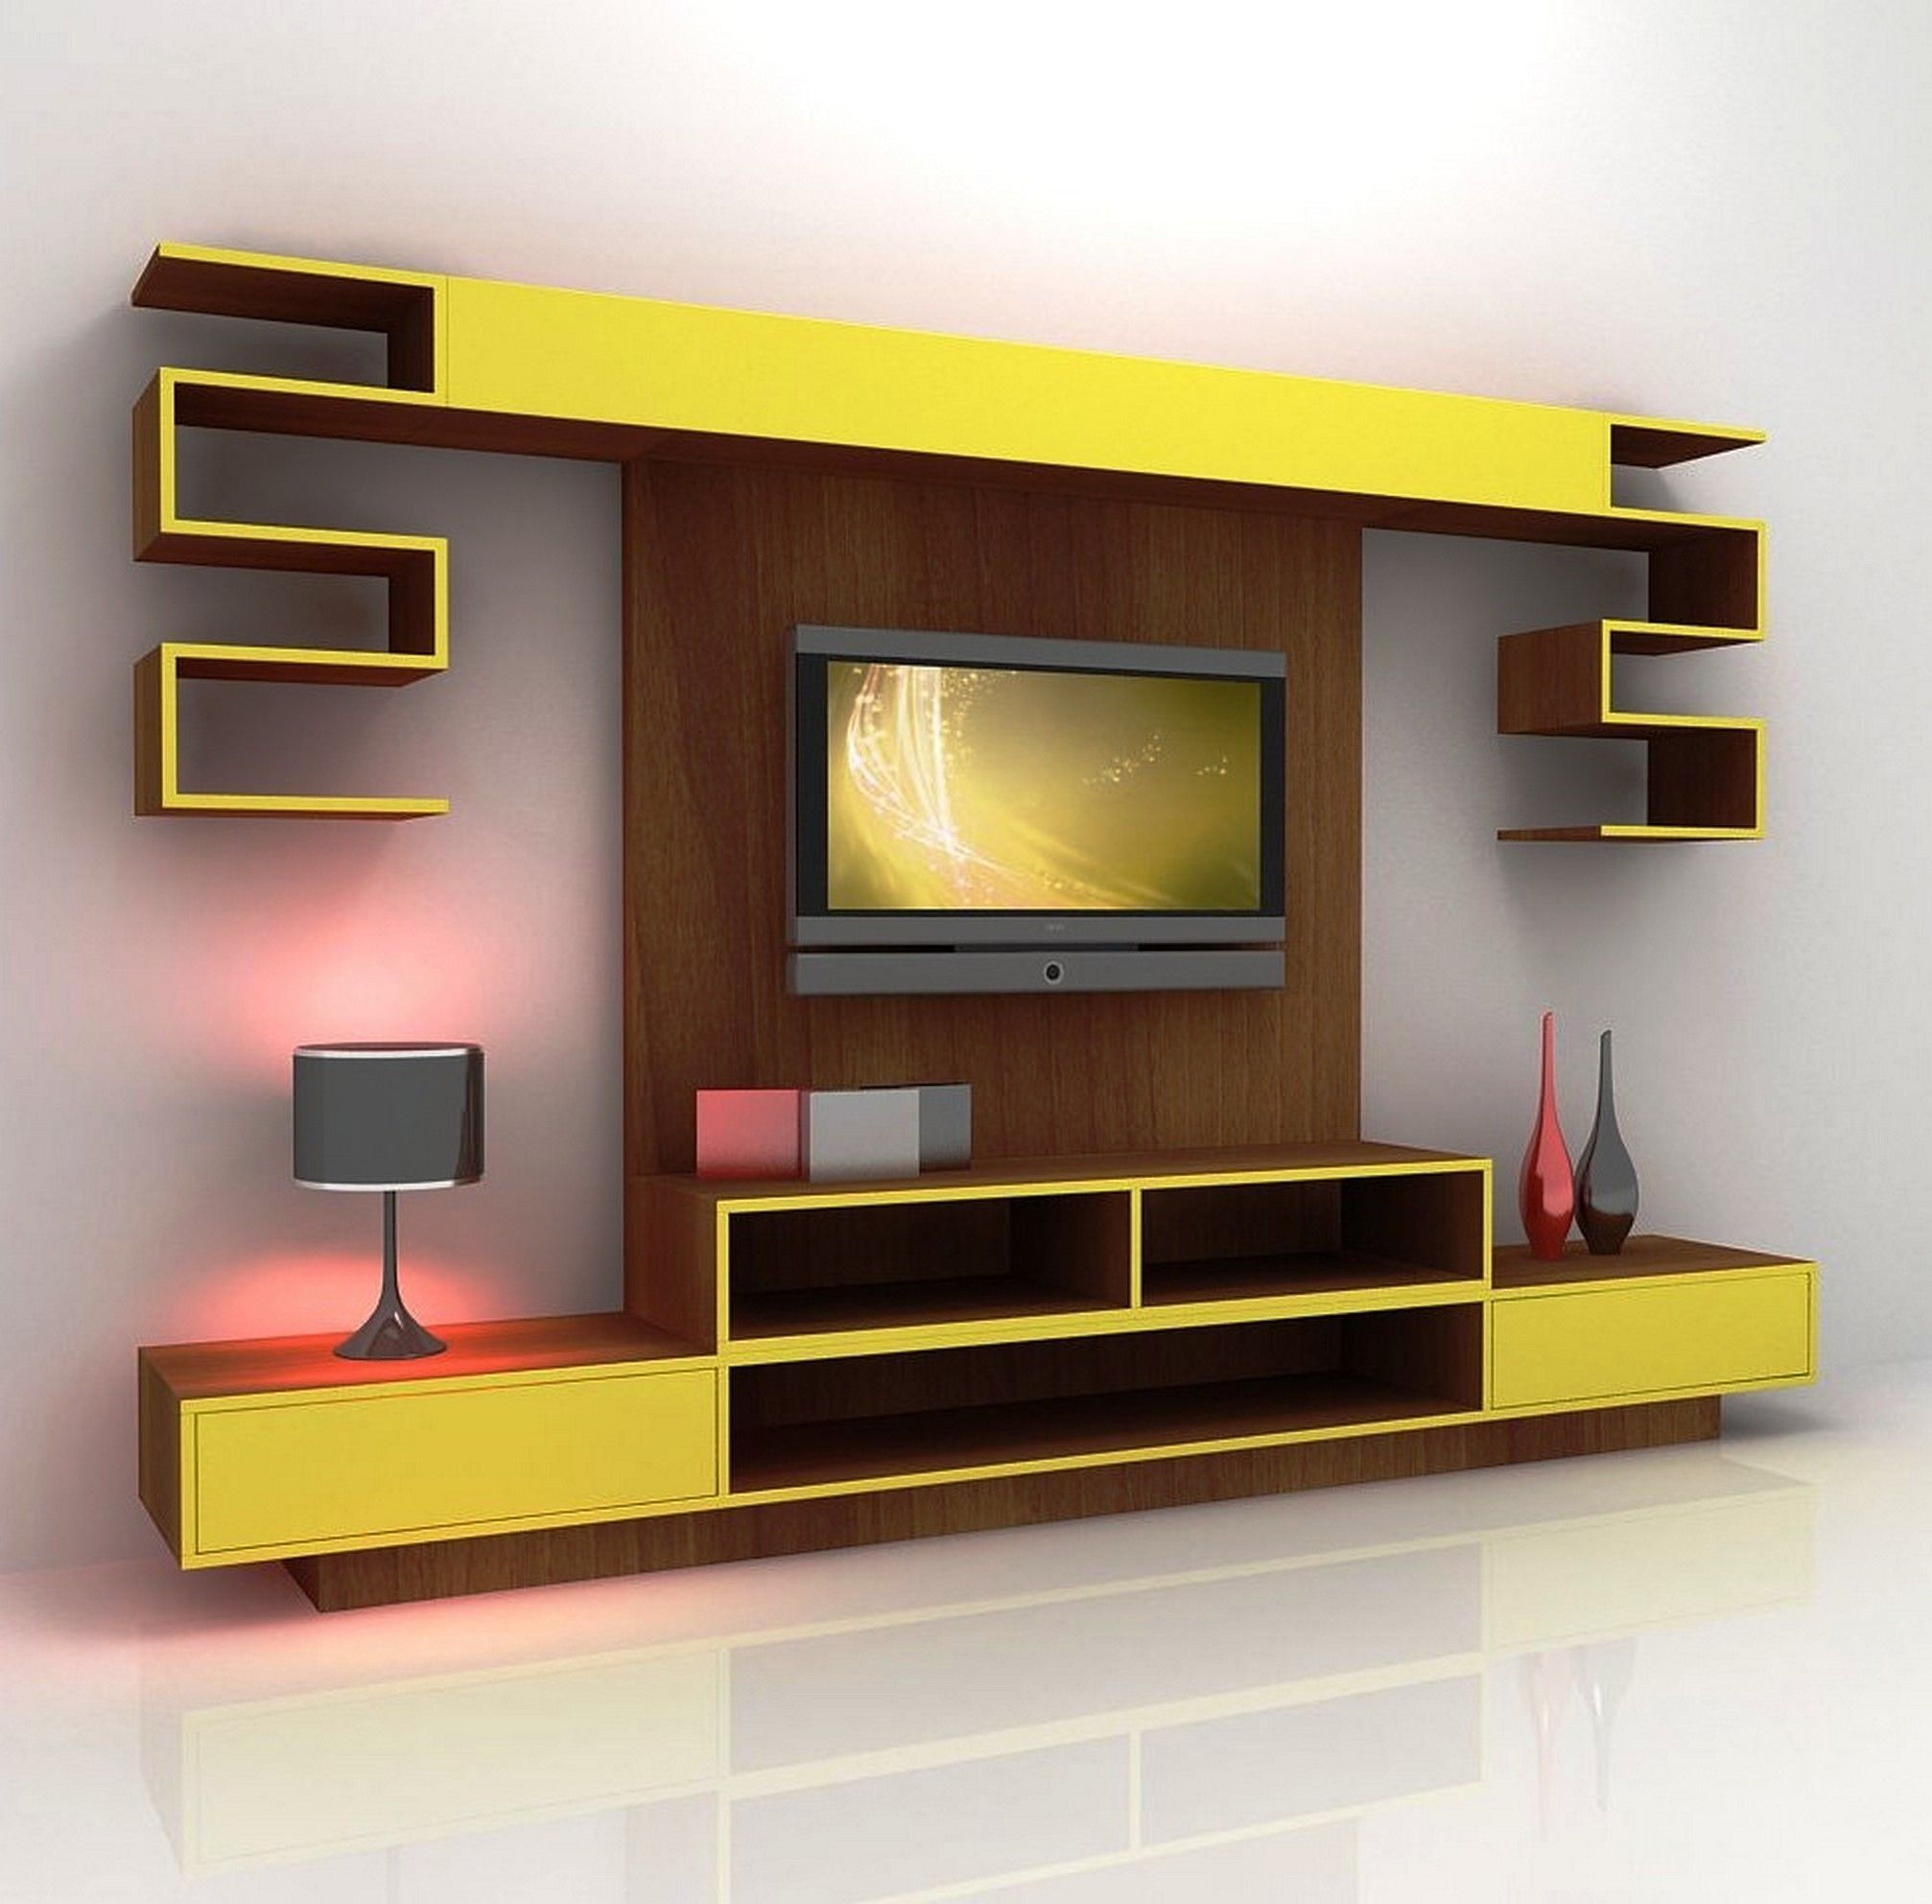 Flat Screen Tv Wall Mount Design Ideas | TV Mount Features ...